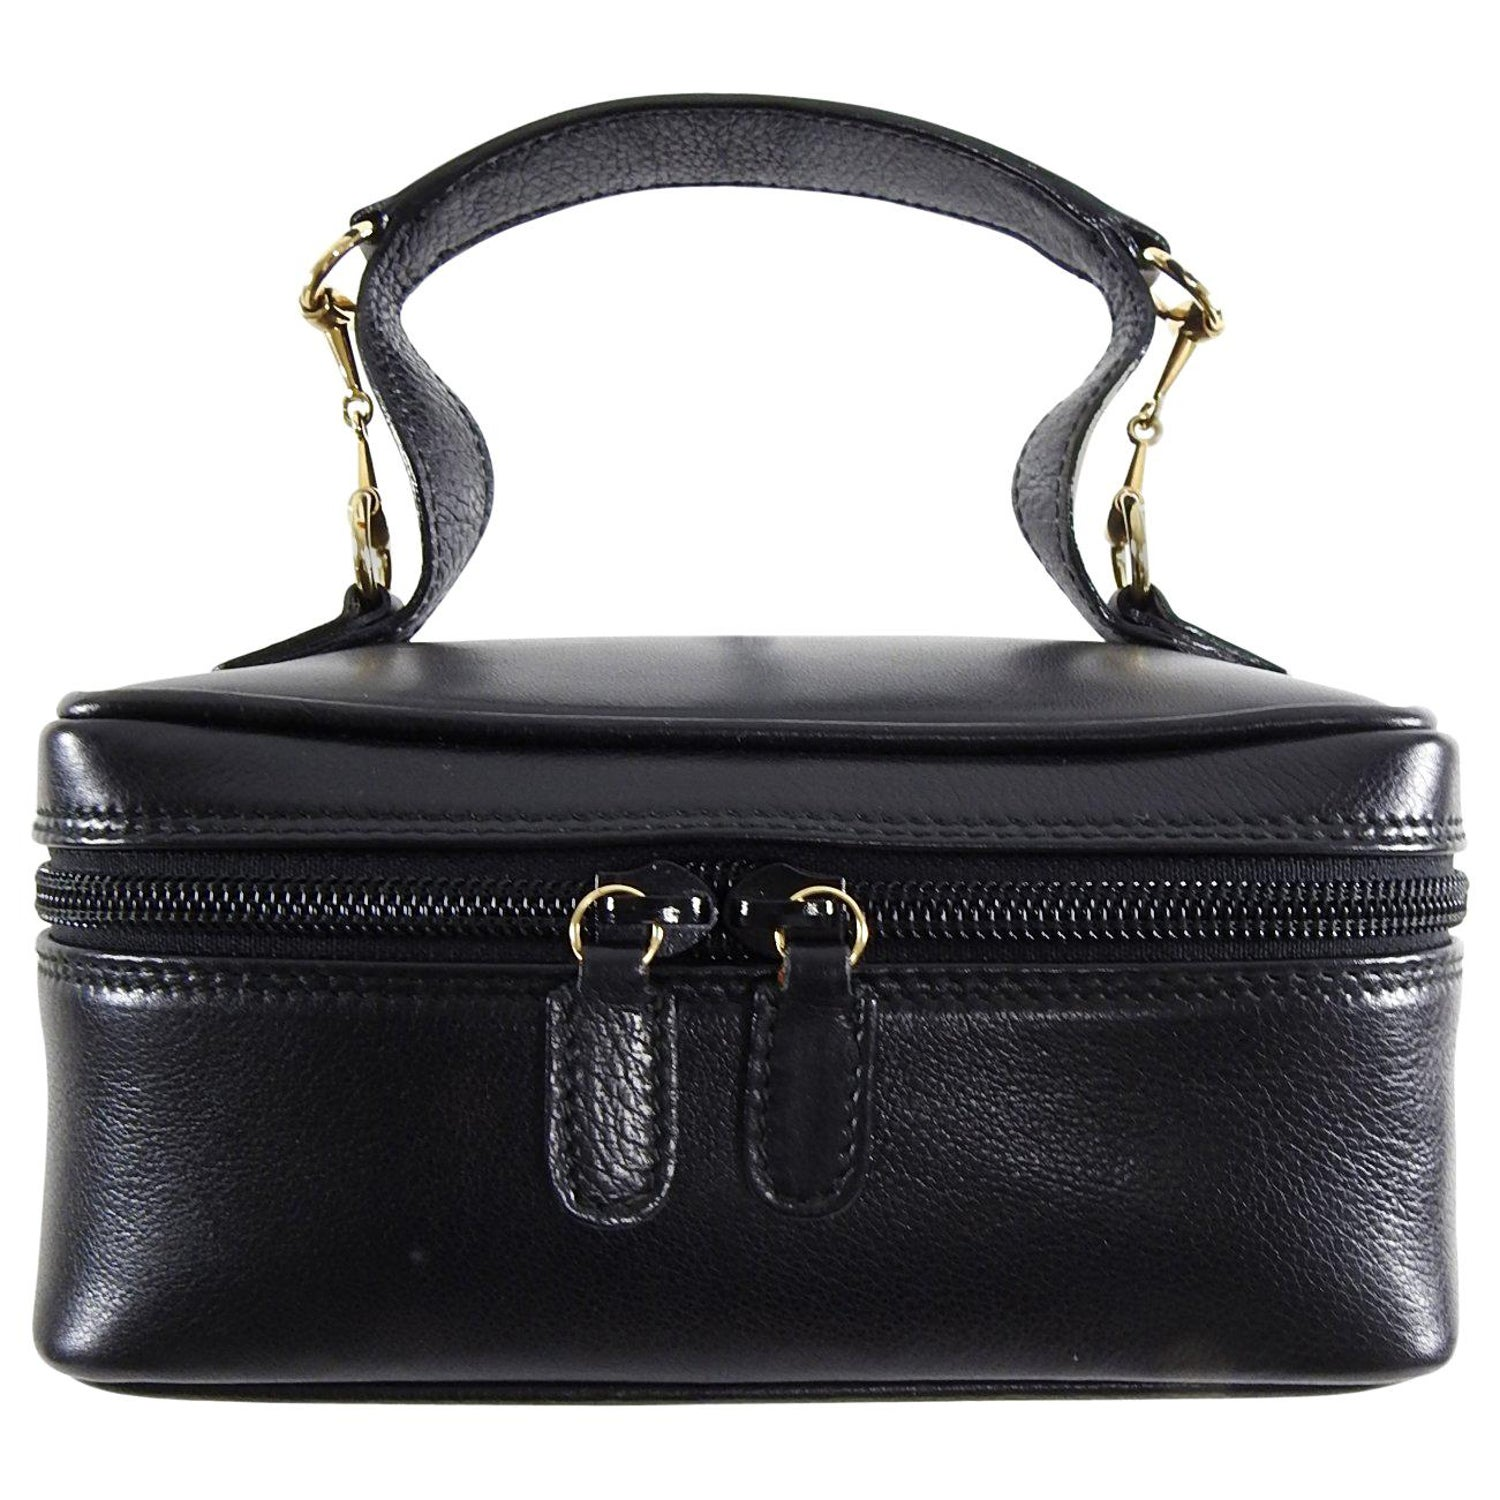 5ef6177b0 Gucci Vintage Small Black Leather Cosmetic Vanity Travel Bag at 1stdibs